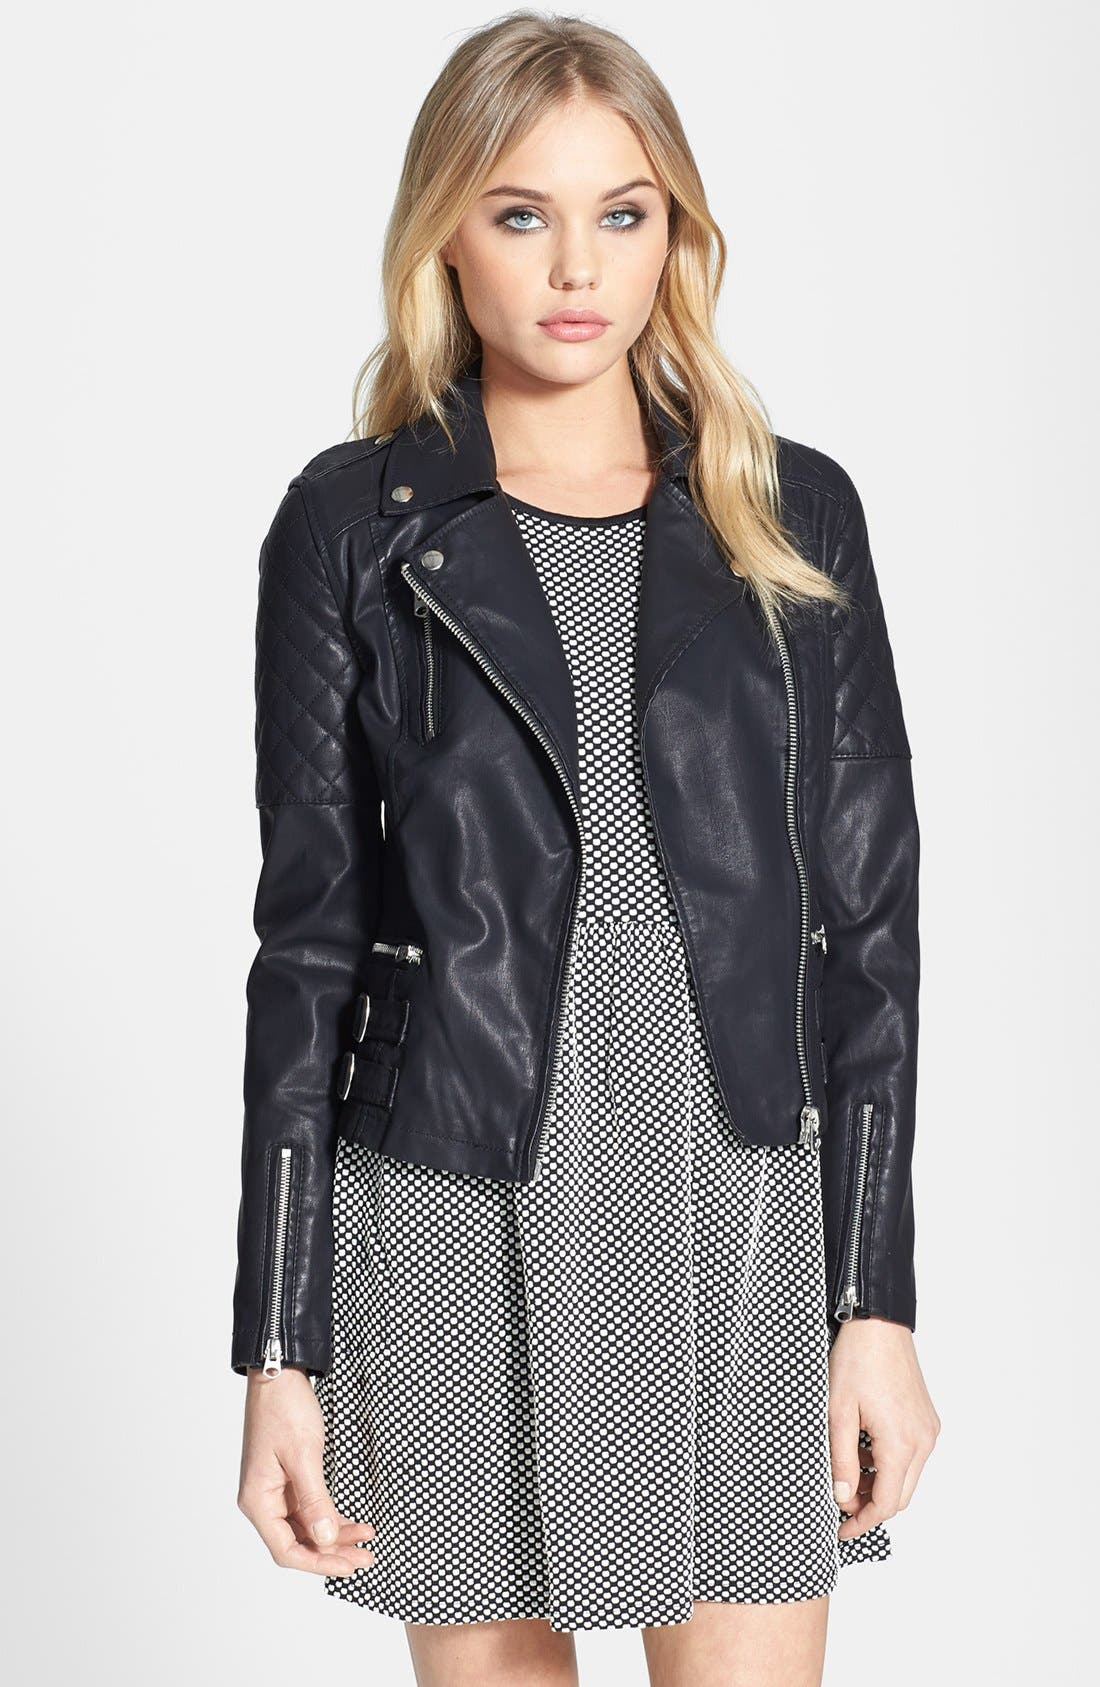 Alternate Image 1 Selected - Topshop 'Wylde' Faux Leather Biker Jacket